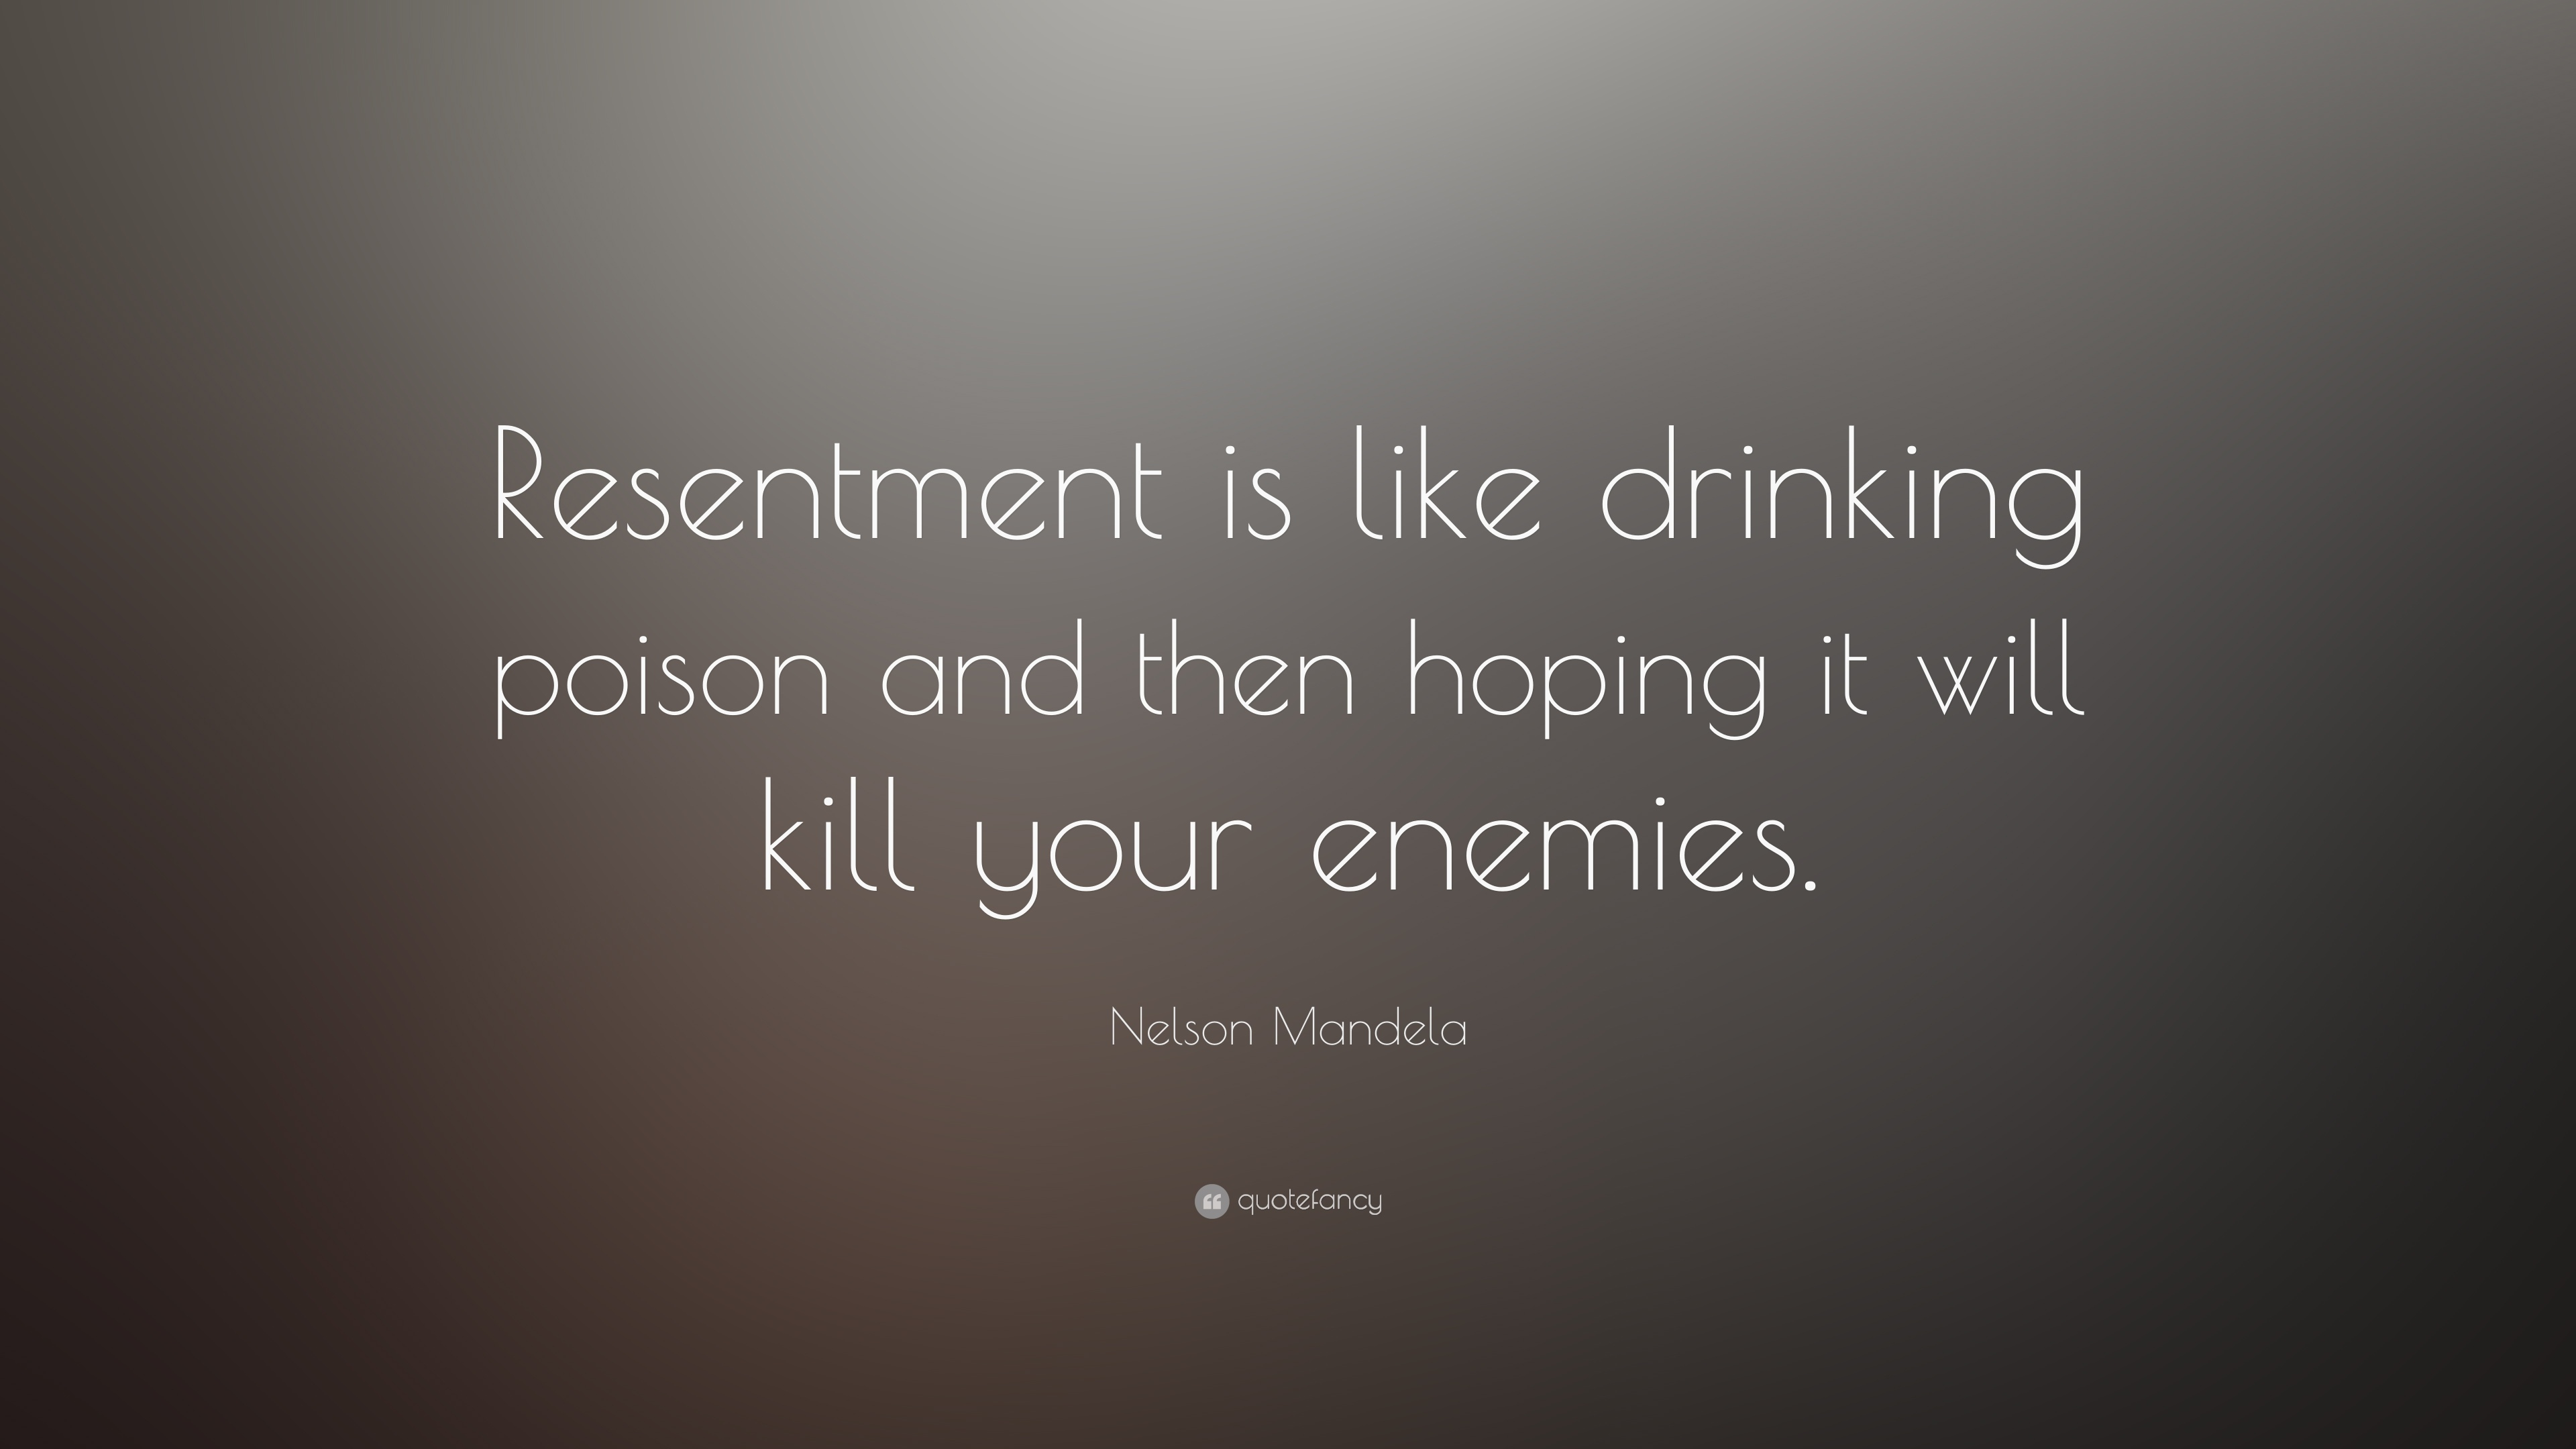 """Nelson Mandela Quote: """"Resentment is like drinking poison and then hoping  it will kill your enemies."""" (13 wallpapers) - Quotefancy"""